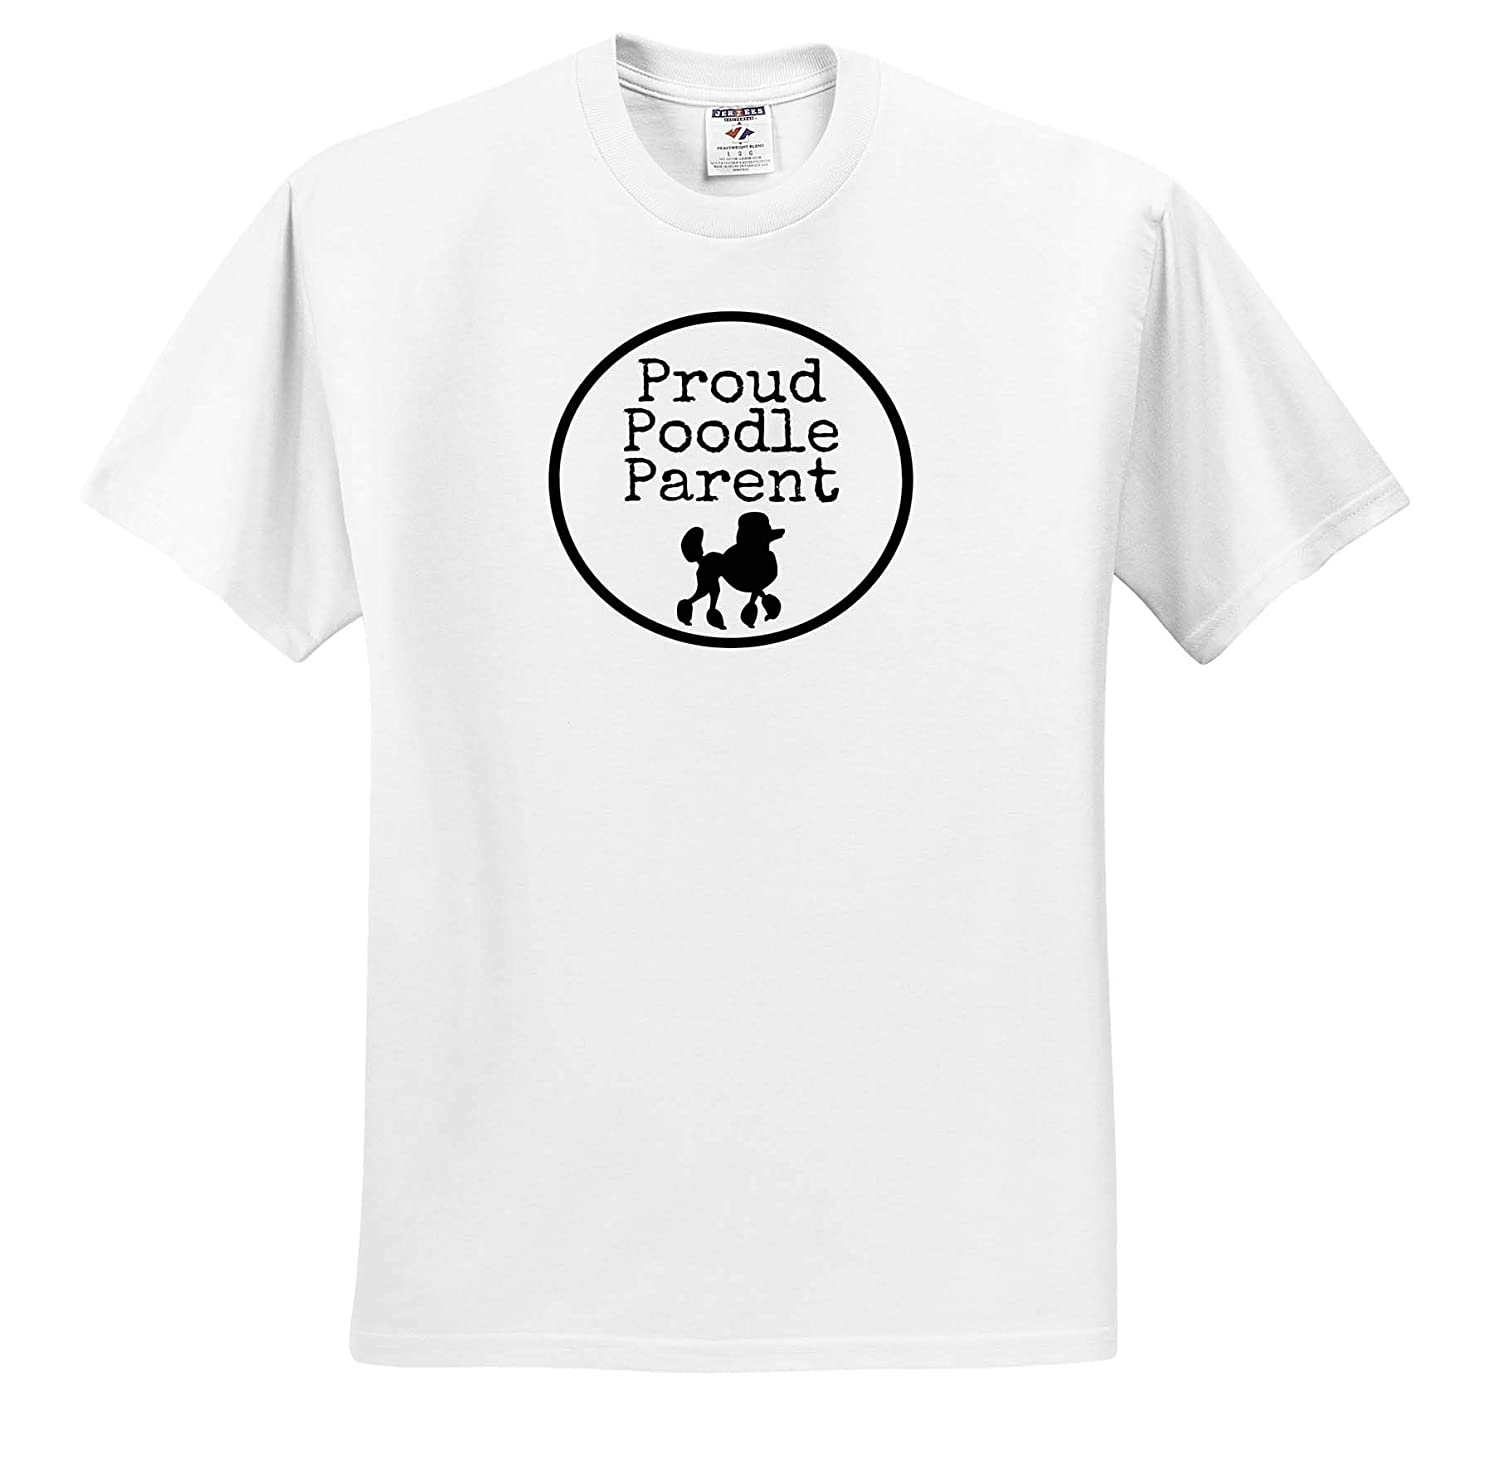 3dRose Carrie Quote Image Adult T-Shirt XL Image Quote Proud Poodle Parent ts/_321064